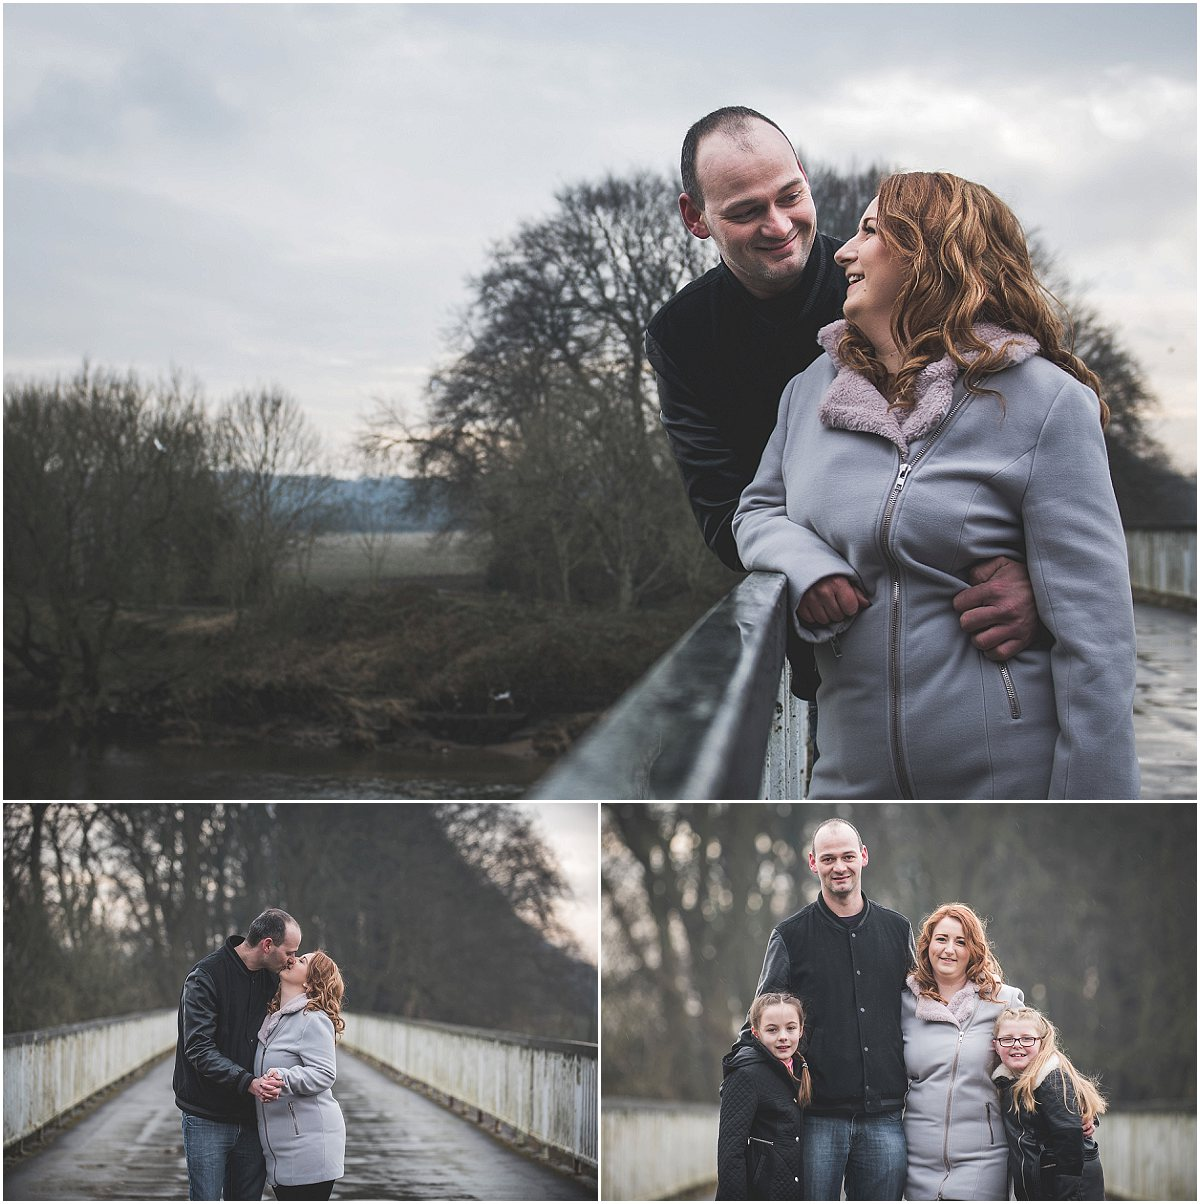 Sharing moments on a bridge - Avenham Park Pre-Wedding Shoot